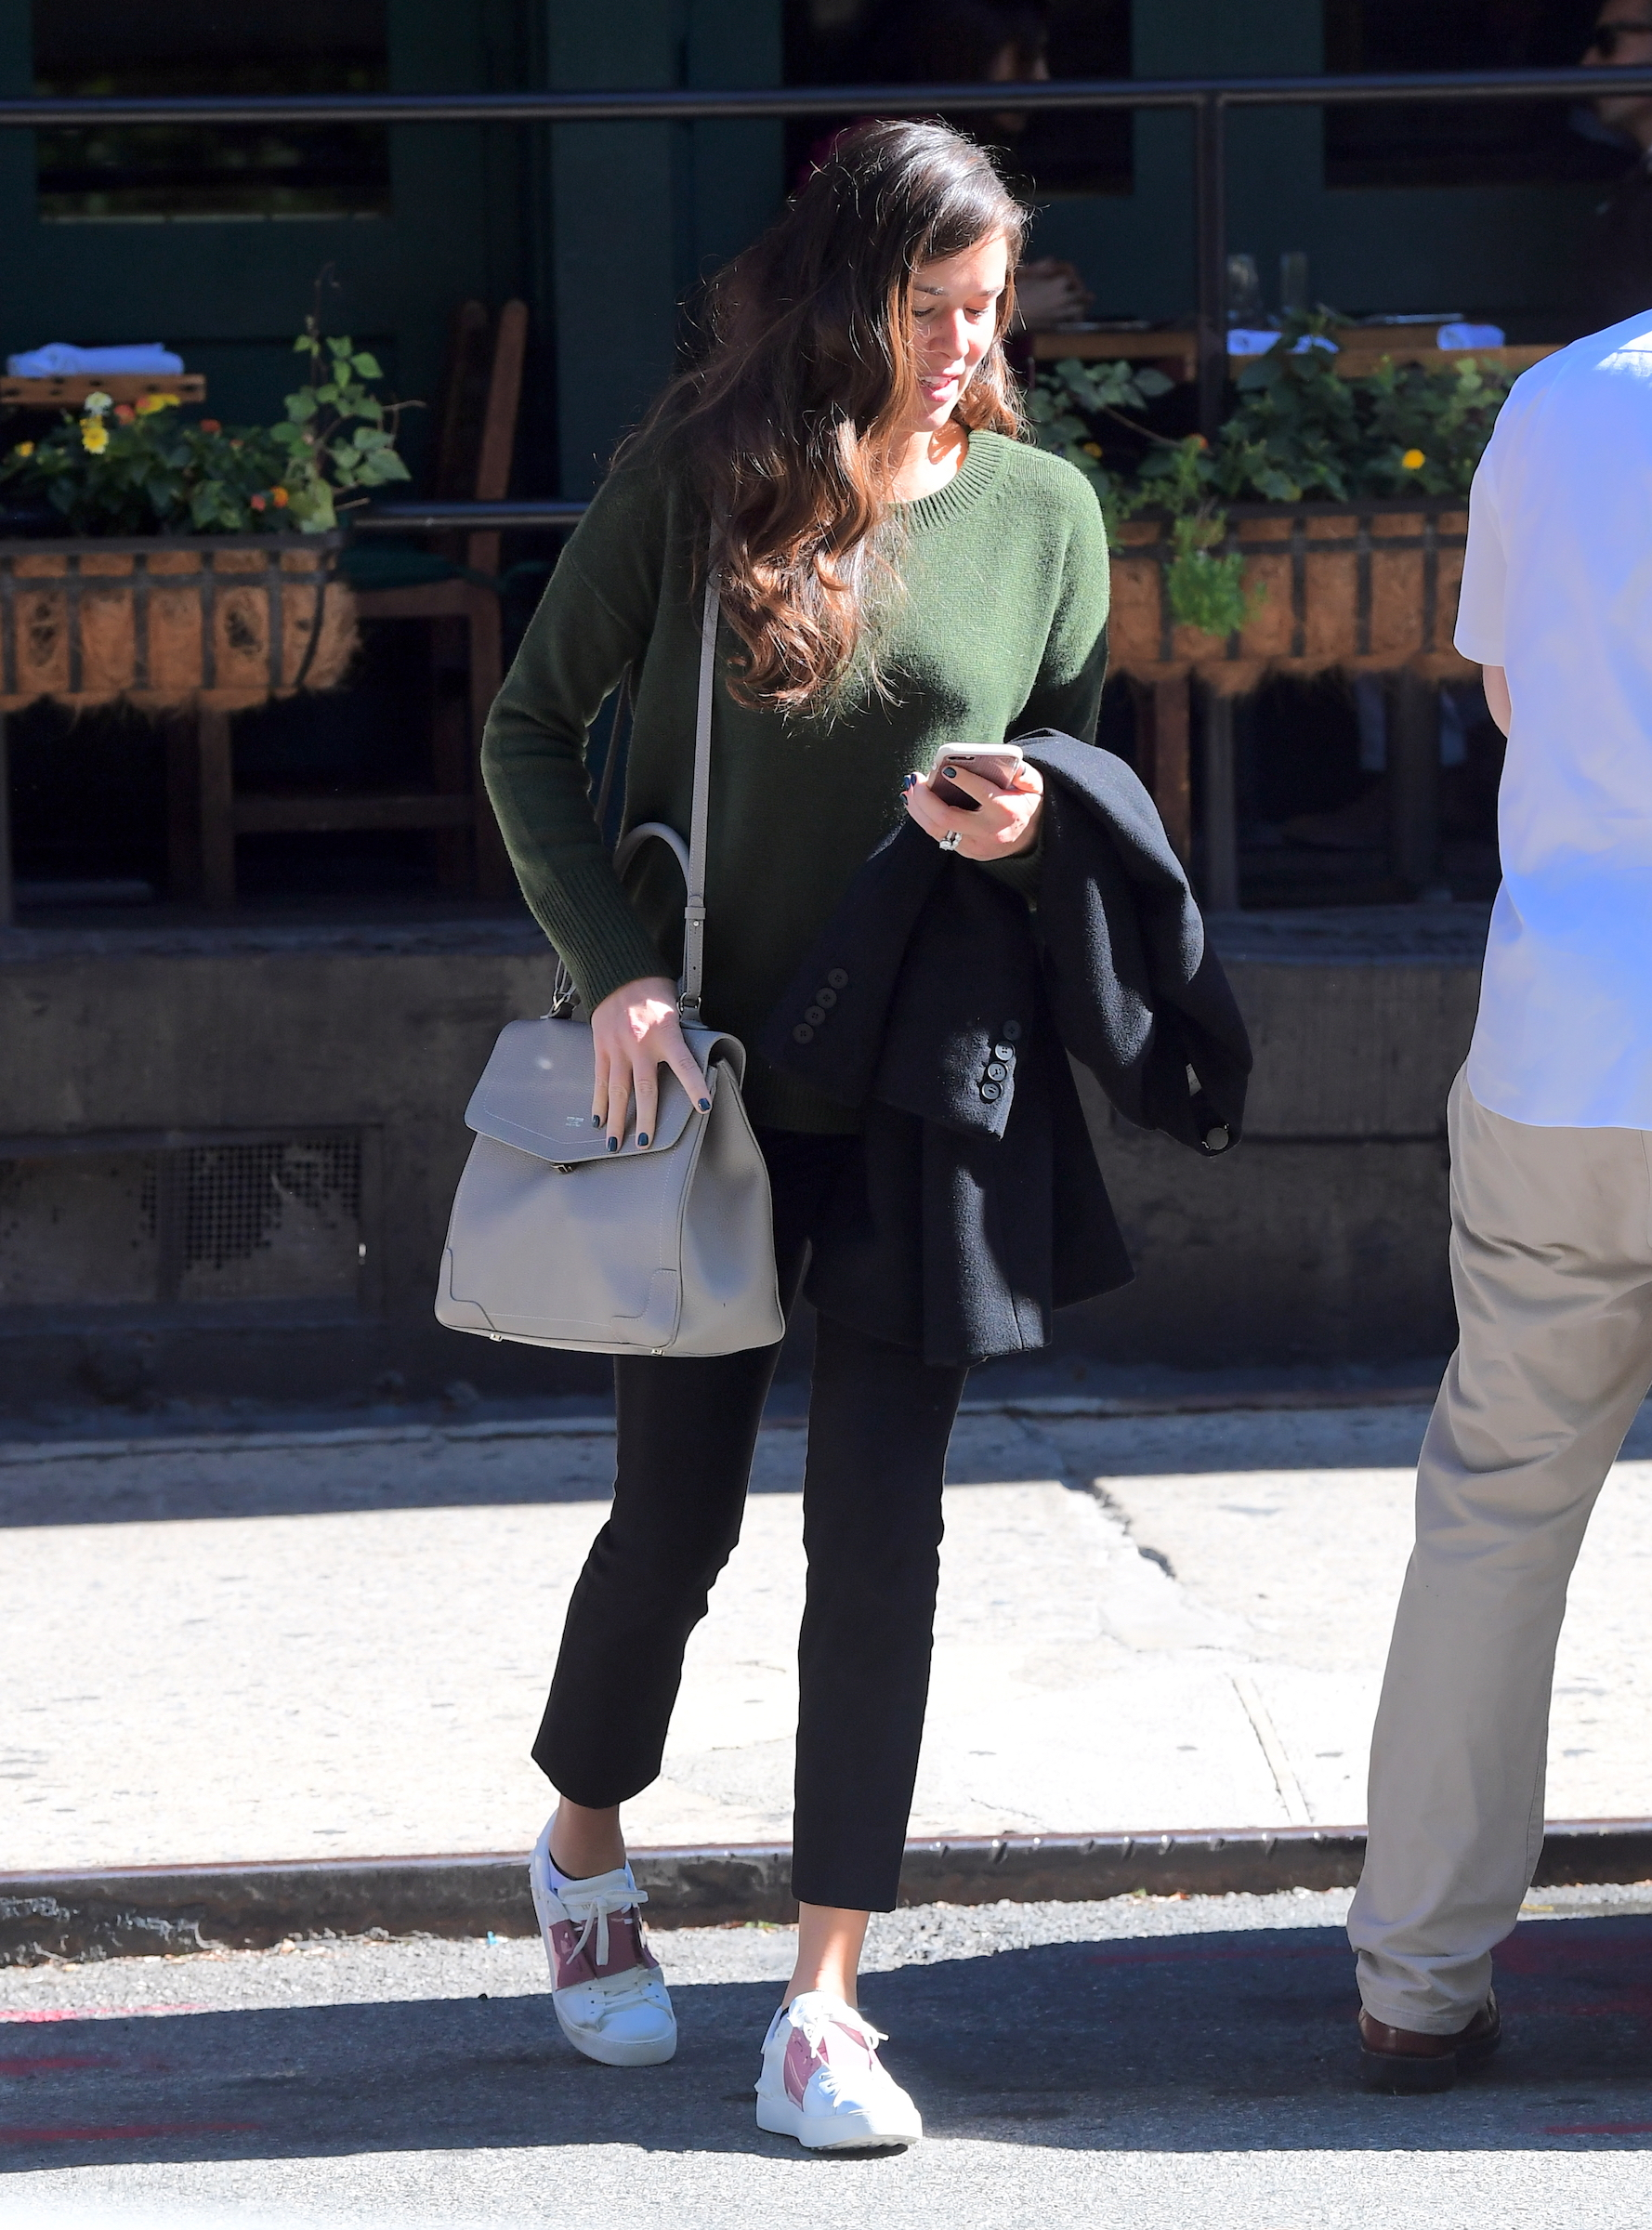 EXCLUSIVE: Ana Ivanovic, retired tennis star and wife of German Soccer superstar, Bastian Schweinsteiger, was spotted out in NYC on Thursday. She wore a baggy green sweater as she caught a flight out of town. She's been rumored to be pregnant, and she did nothing to dispel these rumors. She attempted to cover her stomach with a large purse, and a coat which she carried in front of her. But as she hopped in the car, a hint of a bump could be seen from the side.  <P> Pictured: Ana Ivanovic <B>Ref: SPL1605201  191017   EXCLUSIVE</B><BR/> Picture by: 247PAPS.TV / Splash News<BR/> </P><P> <B>Splash News and Pictures</B><BR/> Los Angeles:310-821-2666<BR/> New York:212-619-2666<BR/> London:870-934-2666<BR/> <span id=